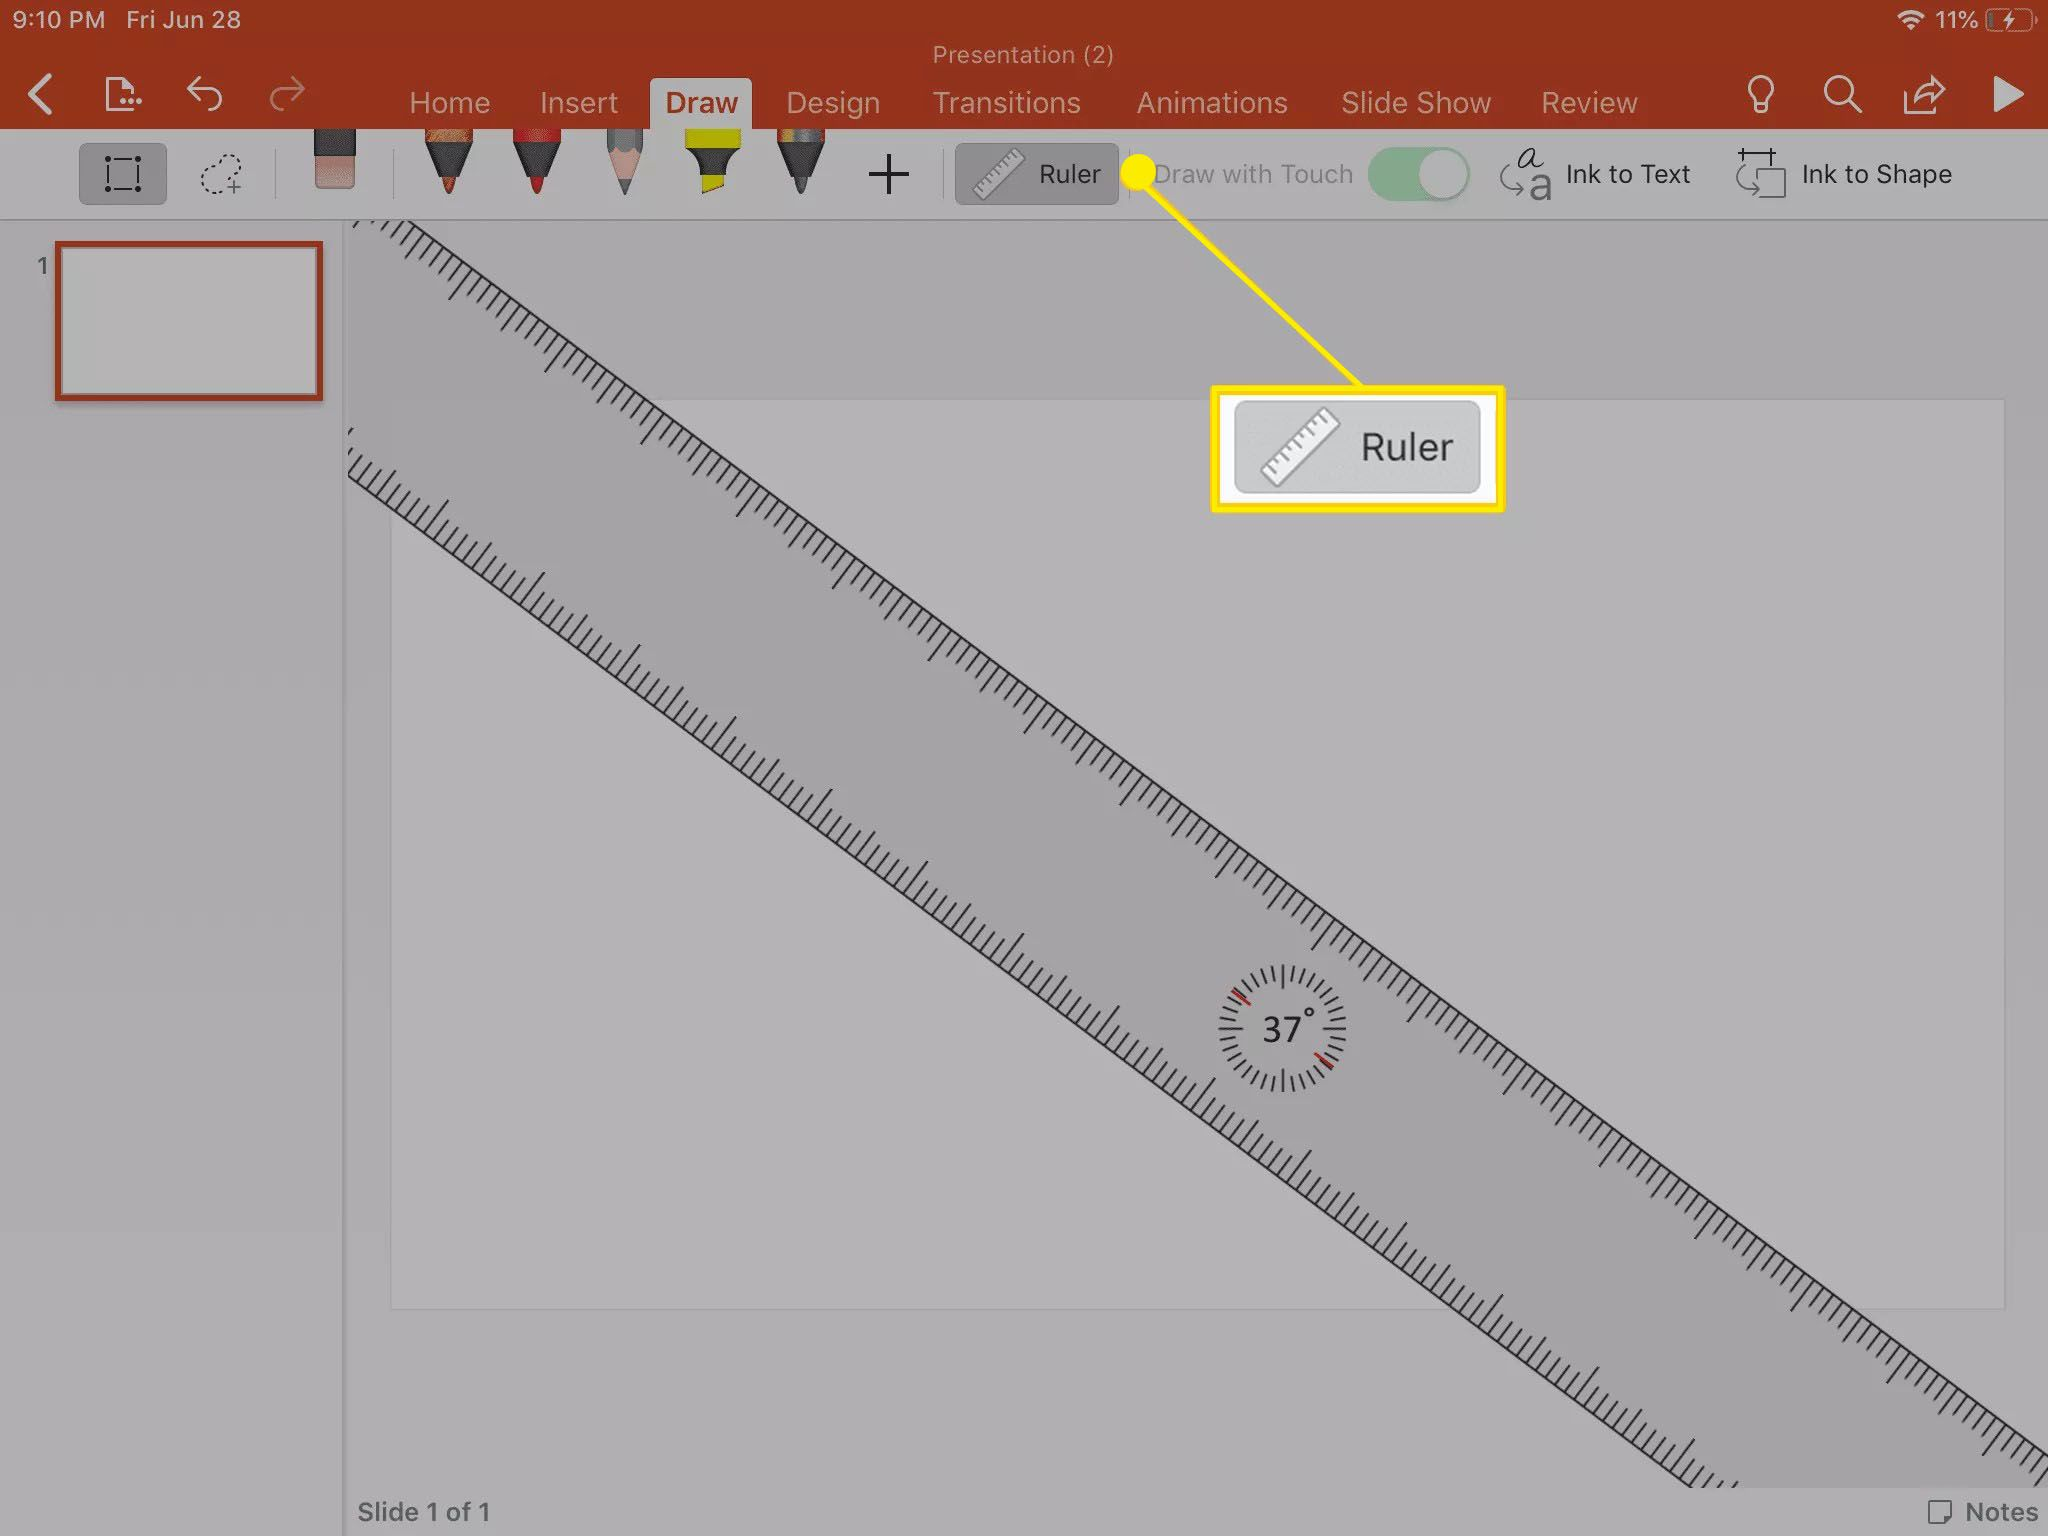 Viewing the Ruler tool inside the Draw tool in PowerPoint.